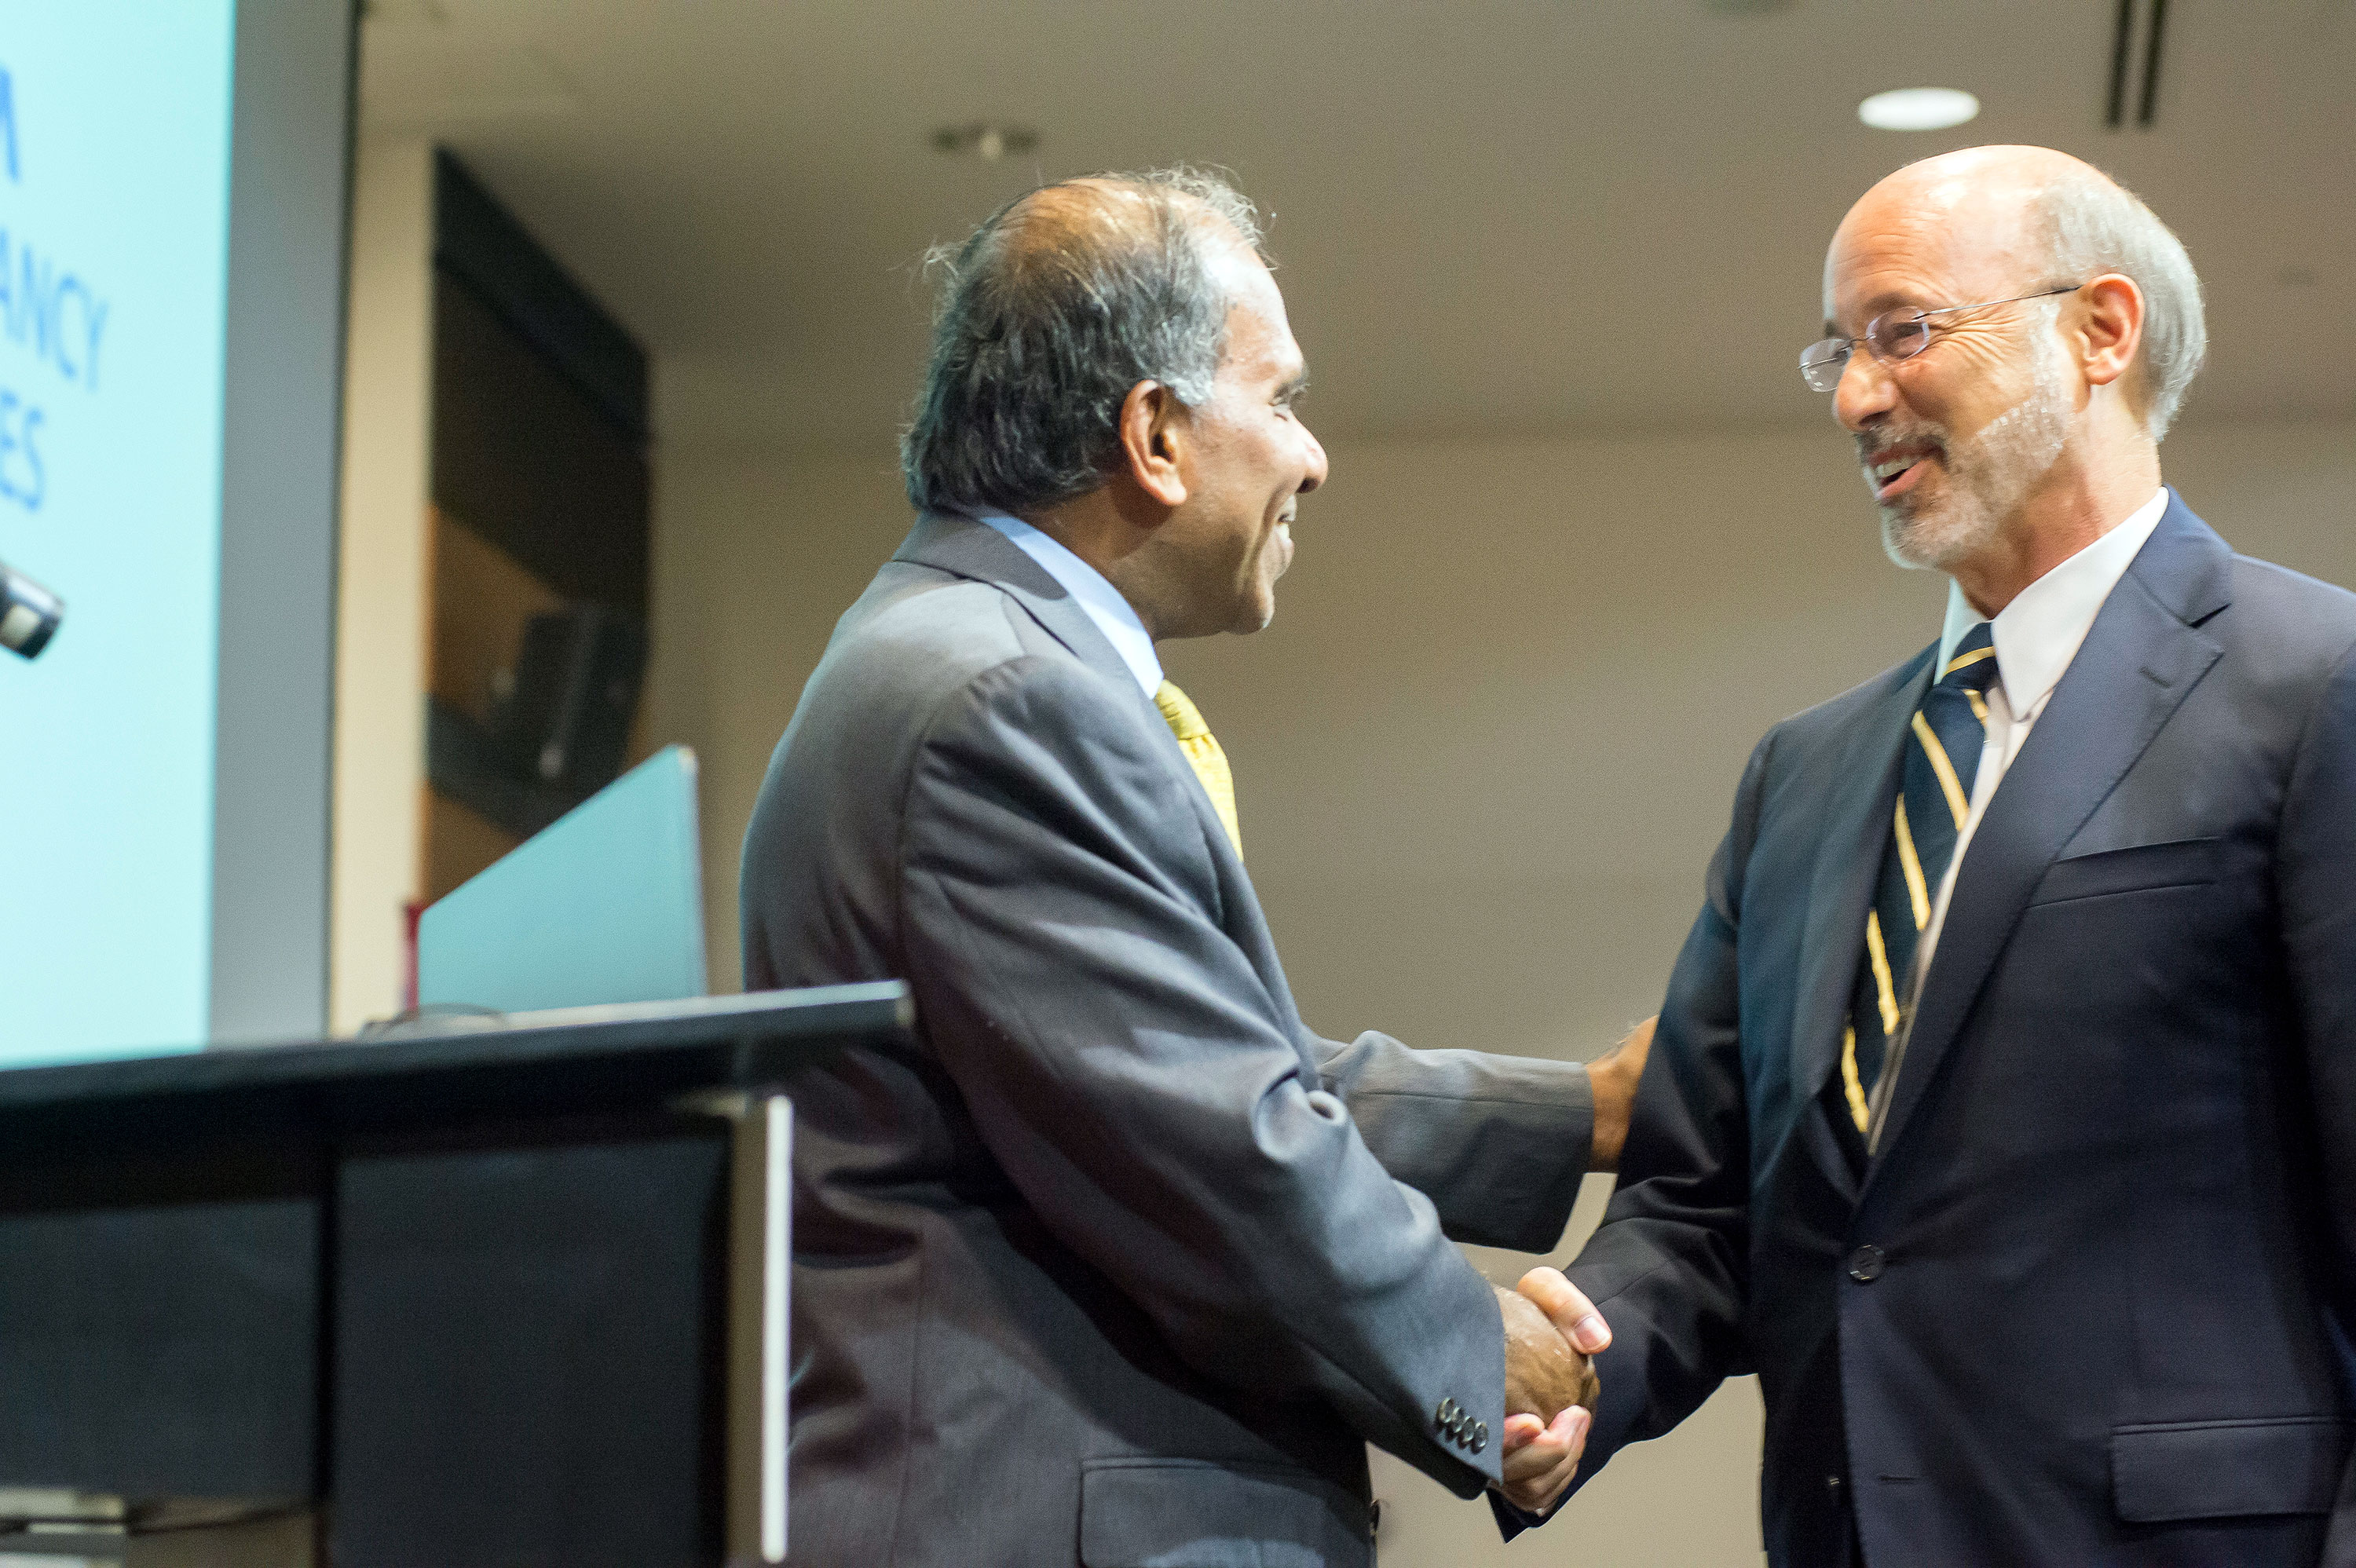 Governor Tom Wolf and Subra Suresh shake hands.